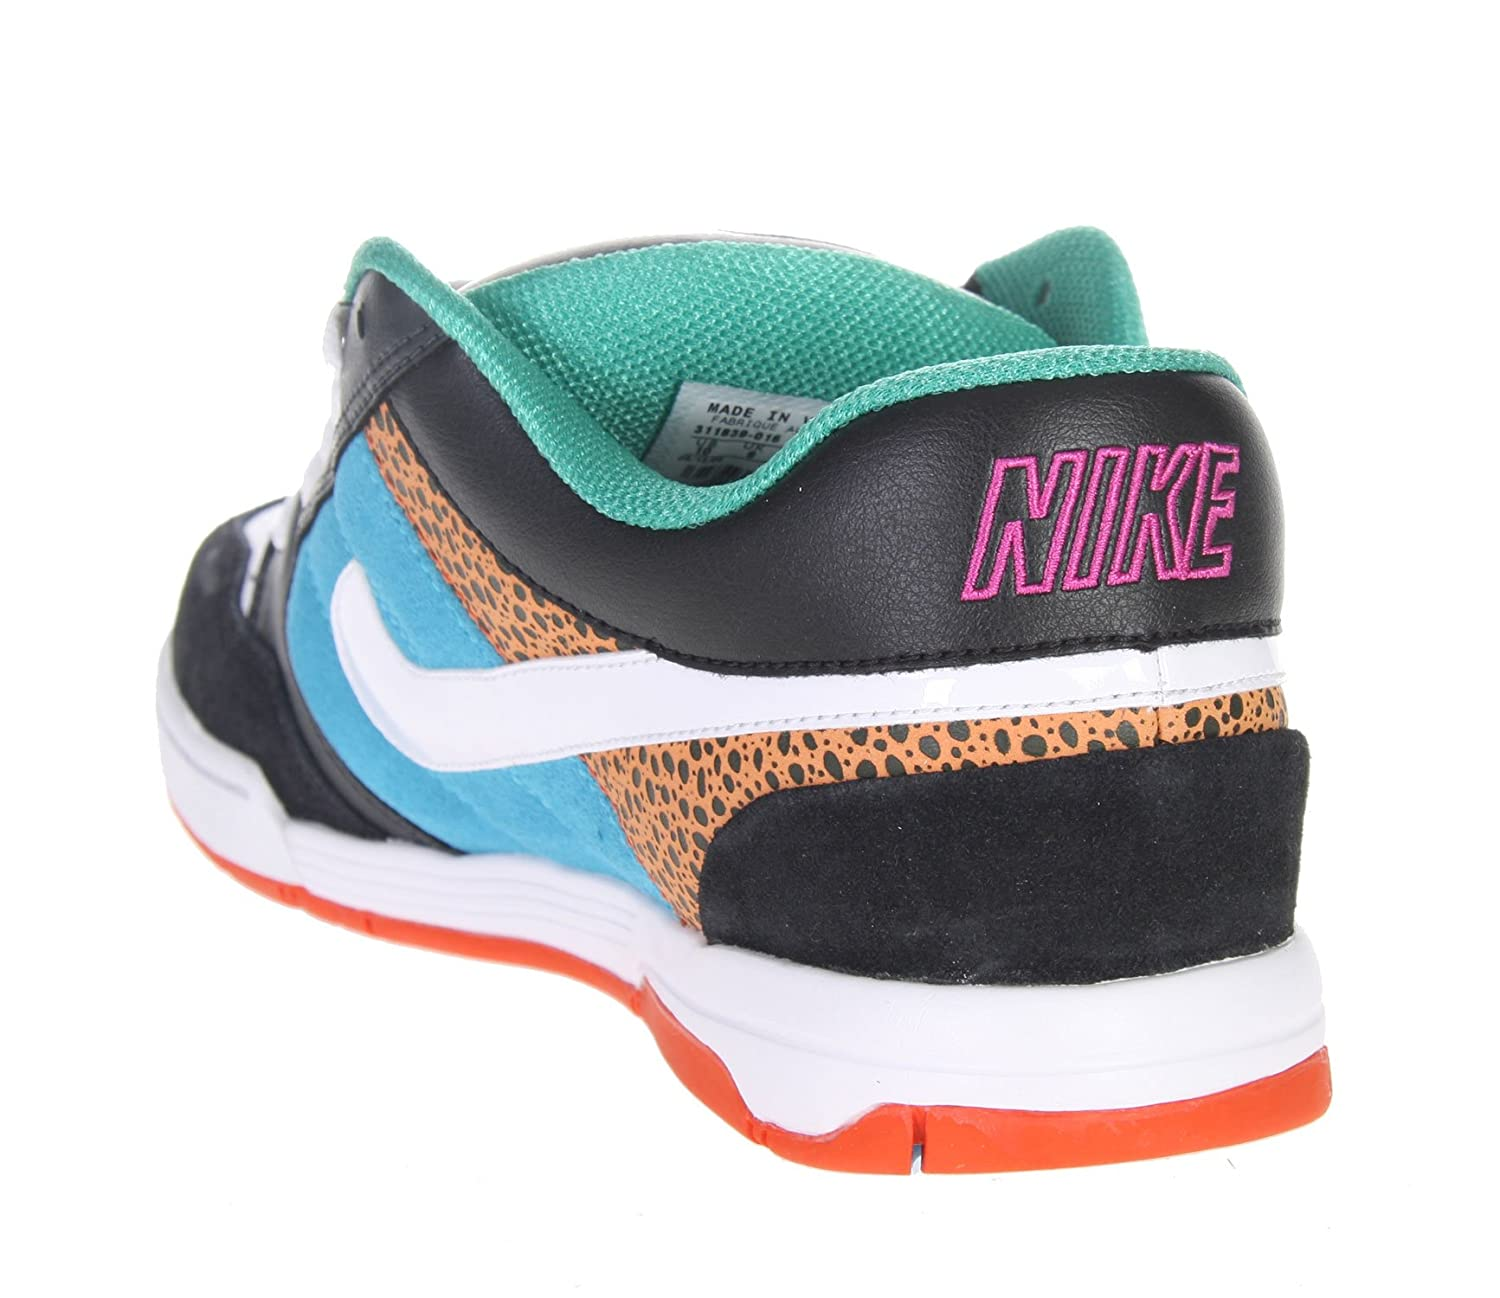 2a396b31d Nike Air Mogan Low 6.0 311839 Black Blue White Turquoise size Euro 47.5 US  13 UK 12 31 cm  Amazon.co.uk  Sports   Outdoors